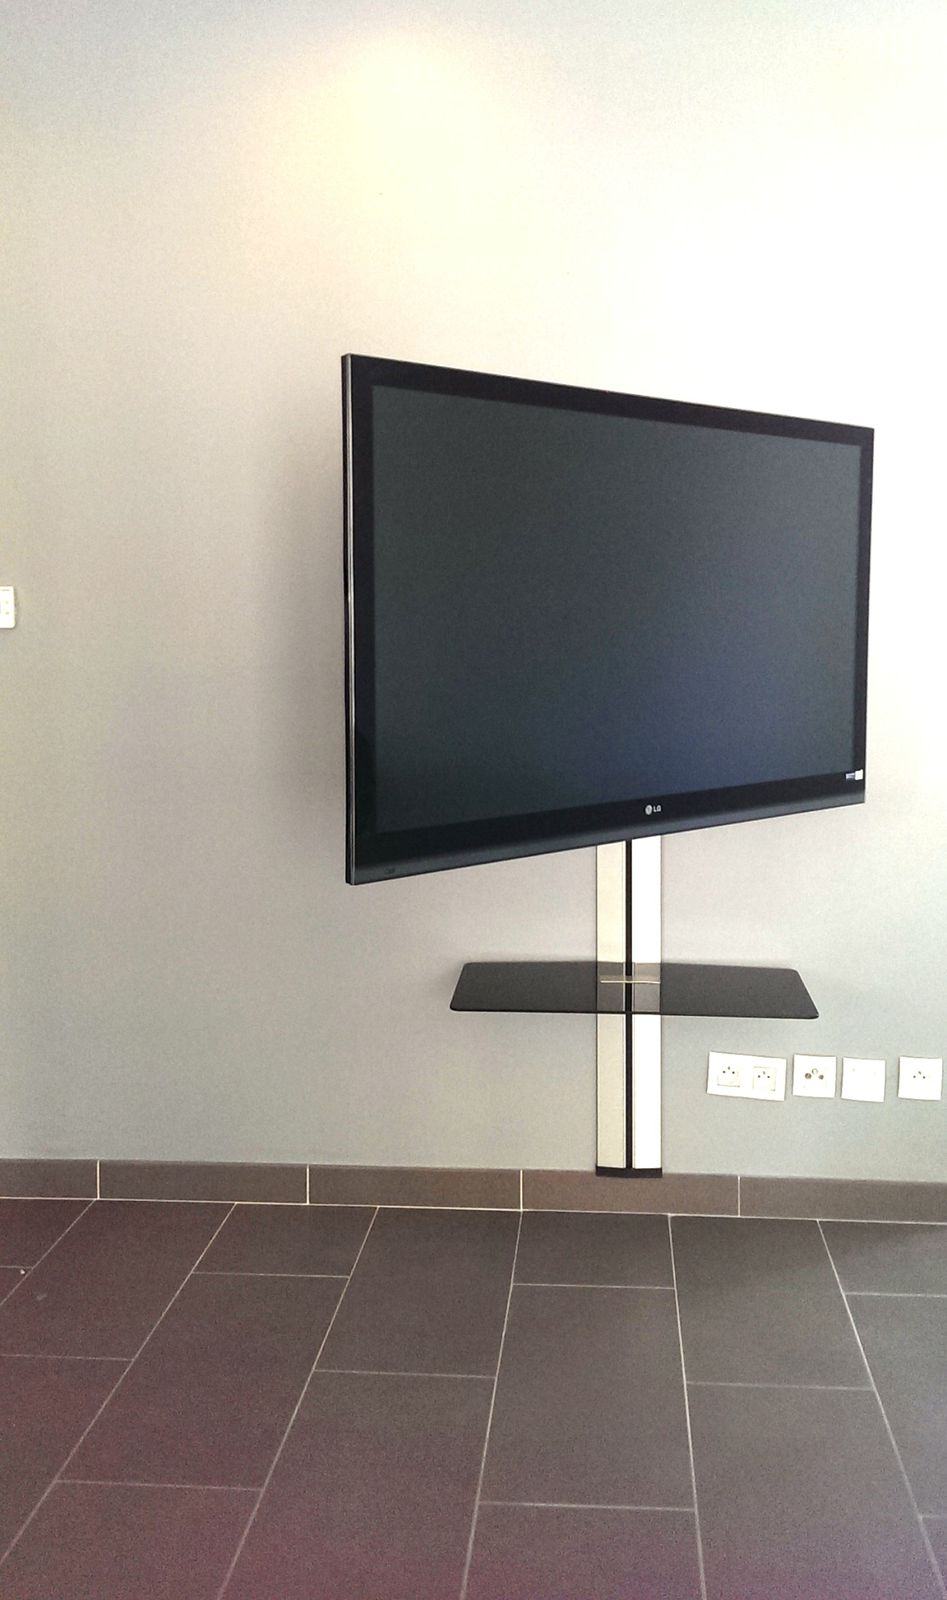 Installer tele murale - Tv au mur comment cacher les fils ...